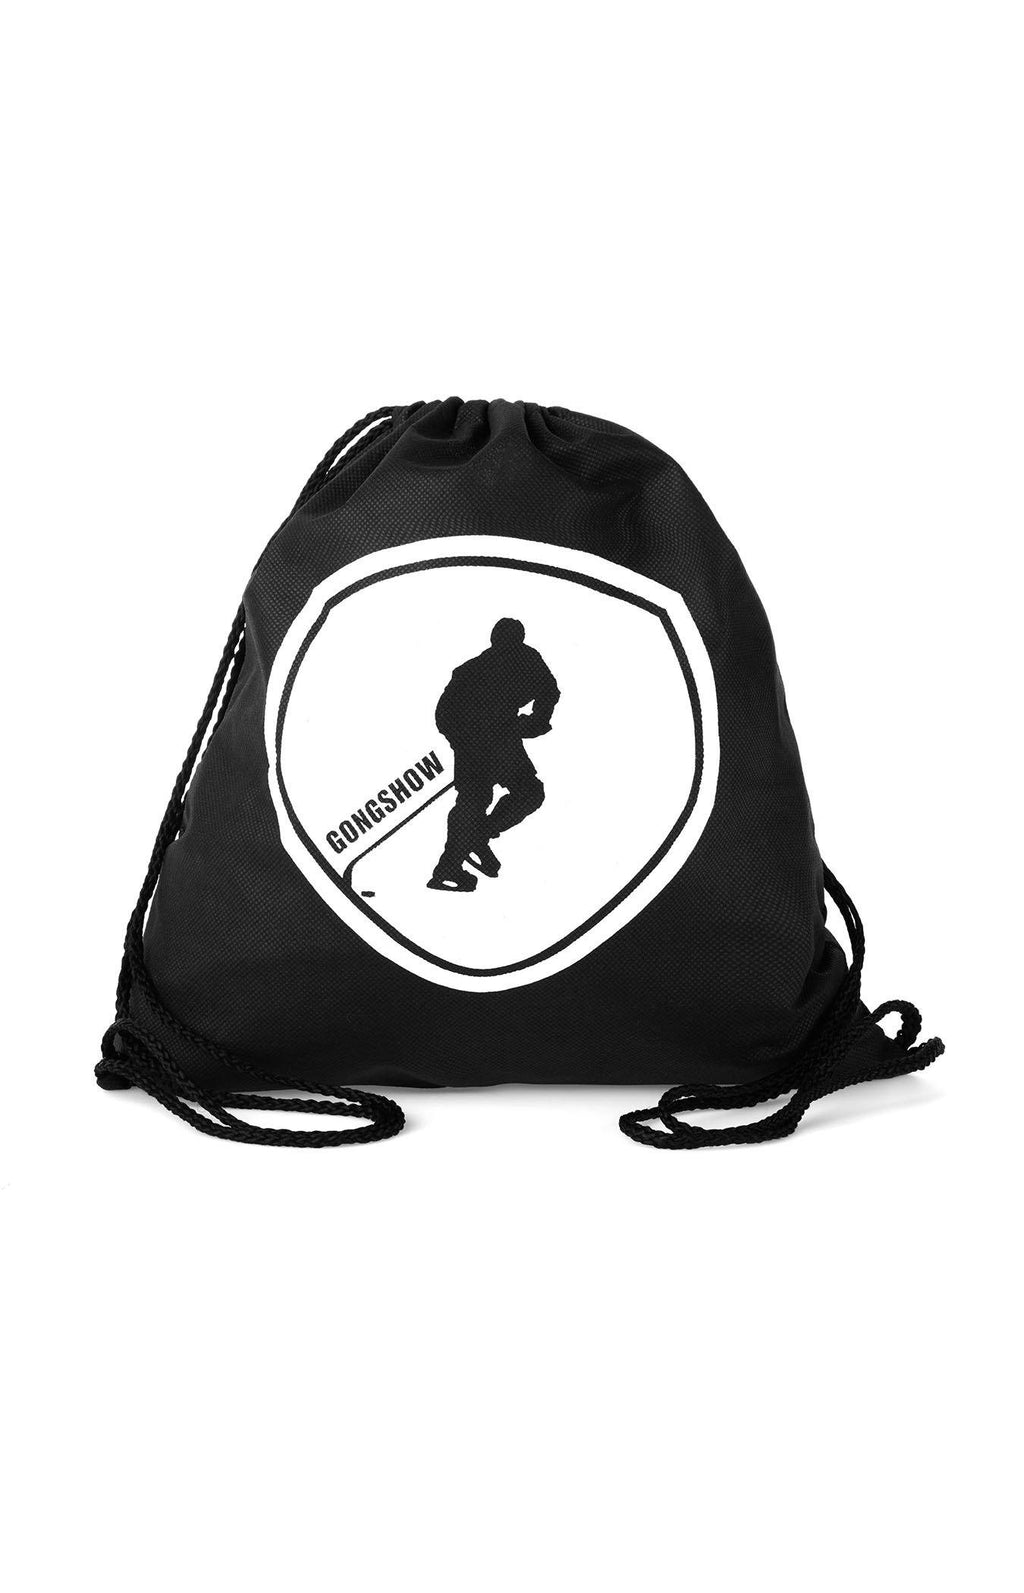 GONGSHOW TOTE BAG